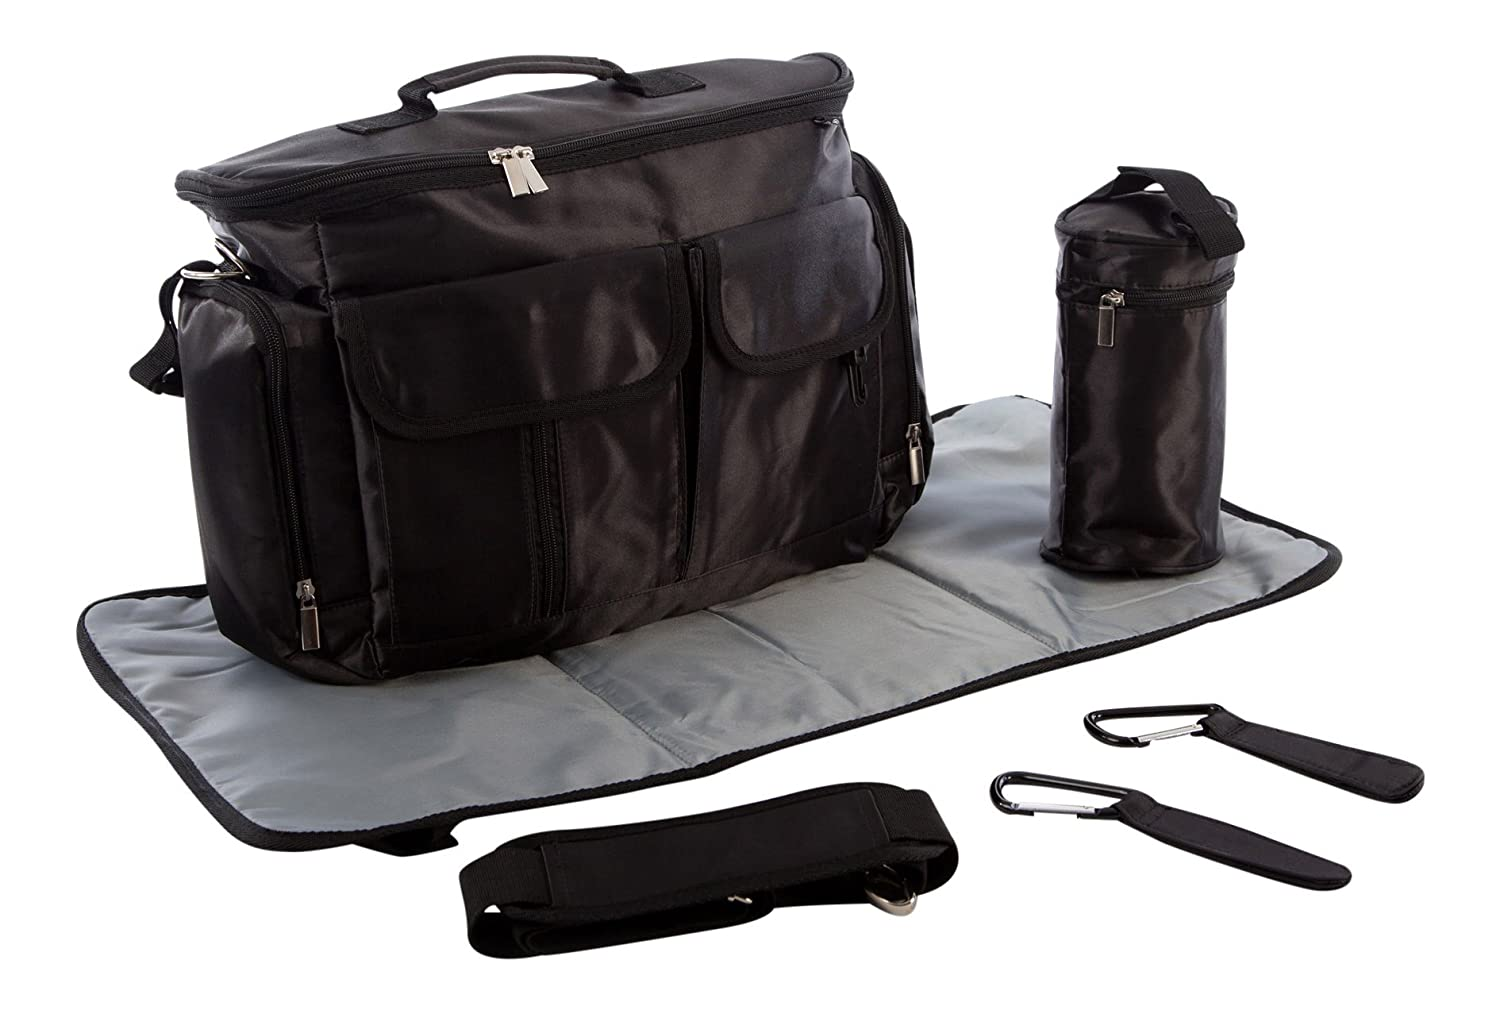 BTR Baby Changing Bag incl. Changing Mat, Bottle Holder & 2 Buggy Clips – Attach to Prams/Strollers/Buggies. Black